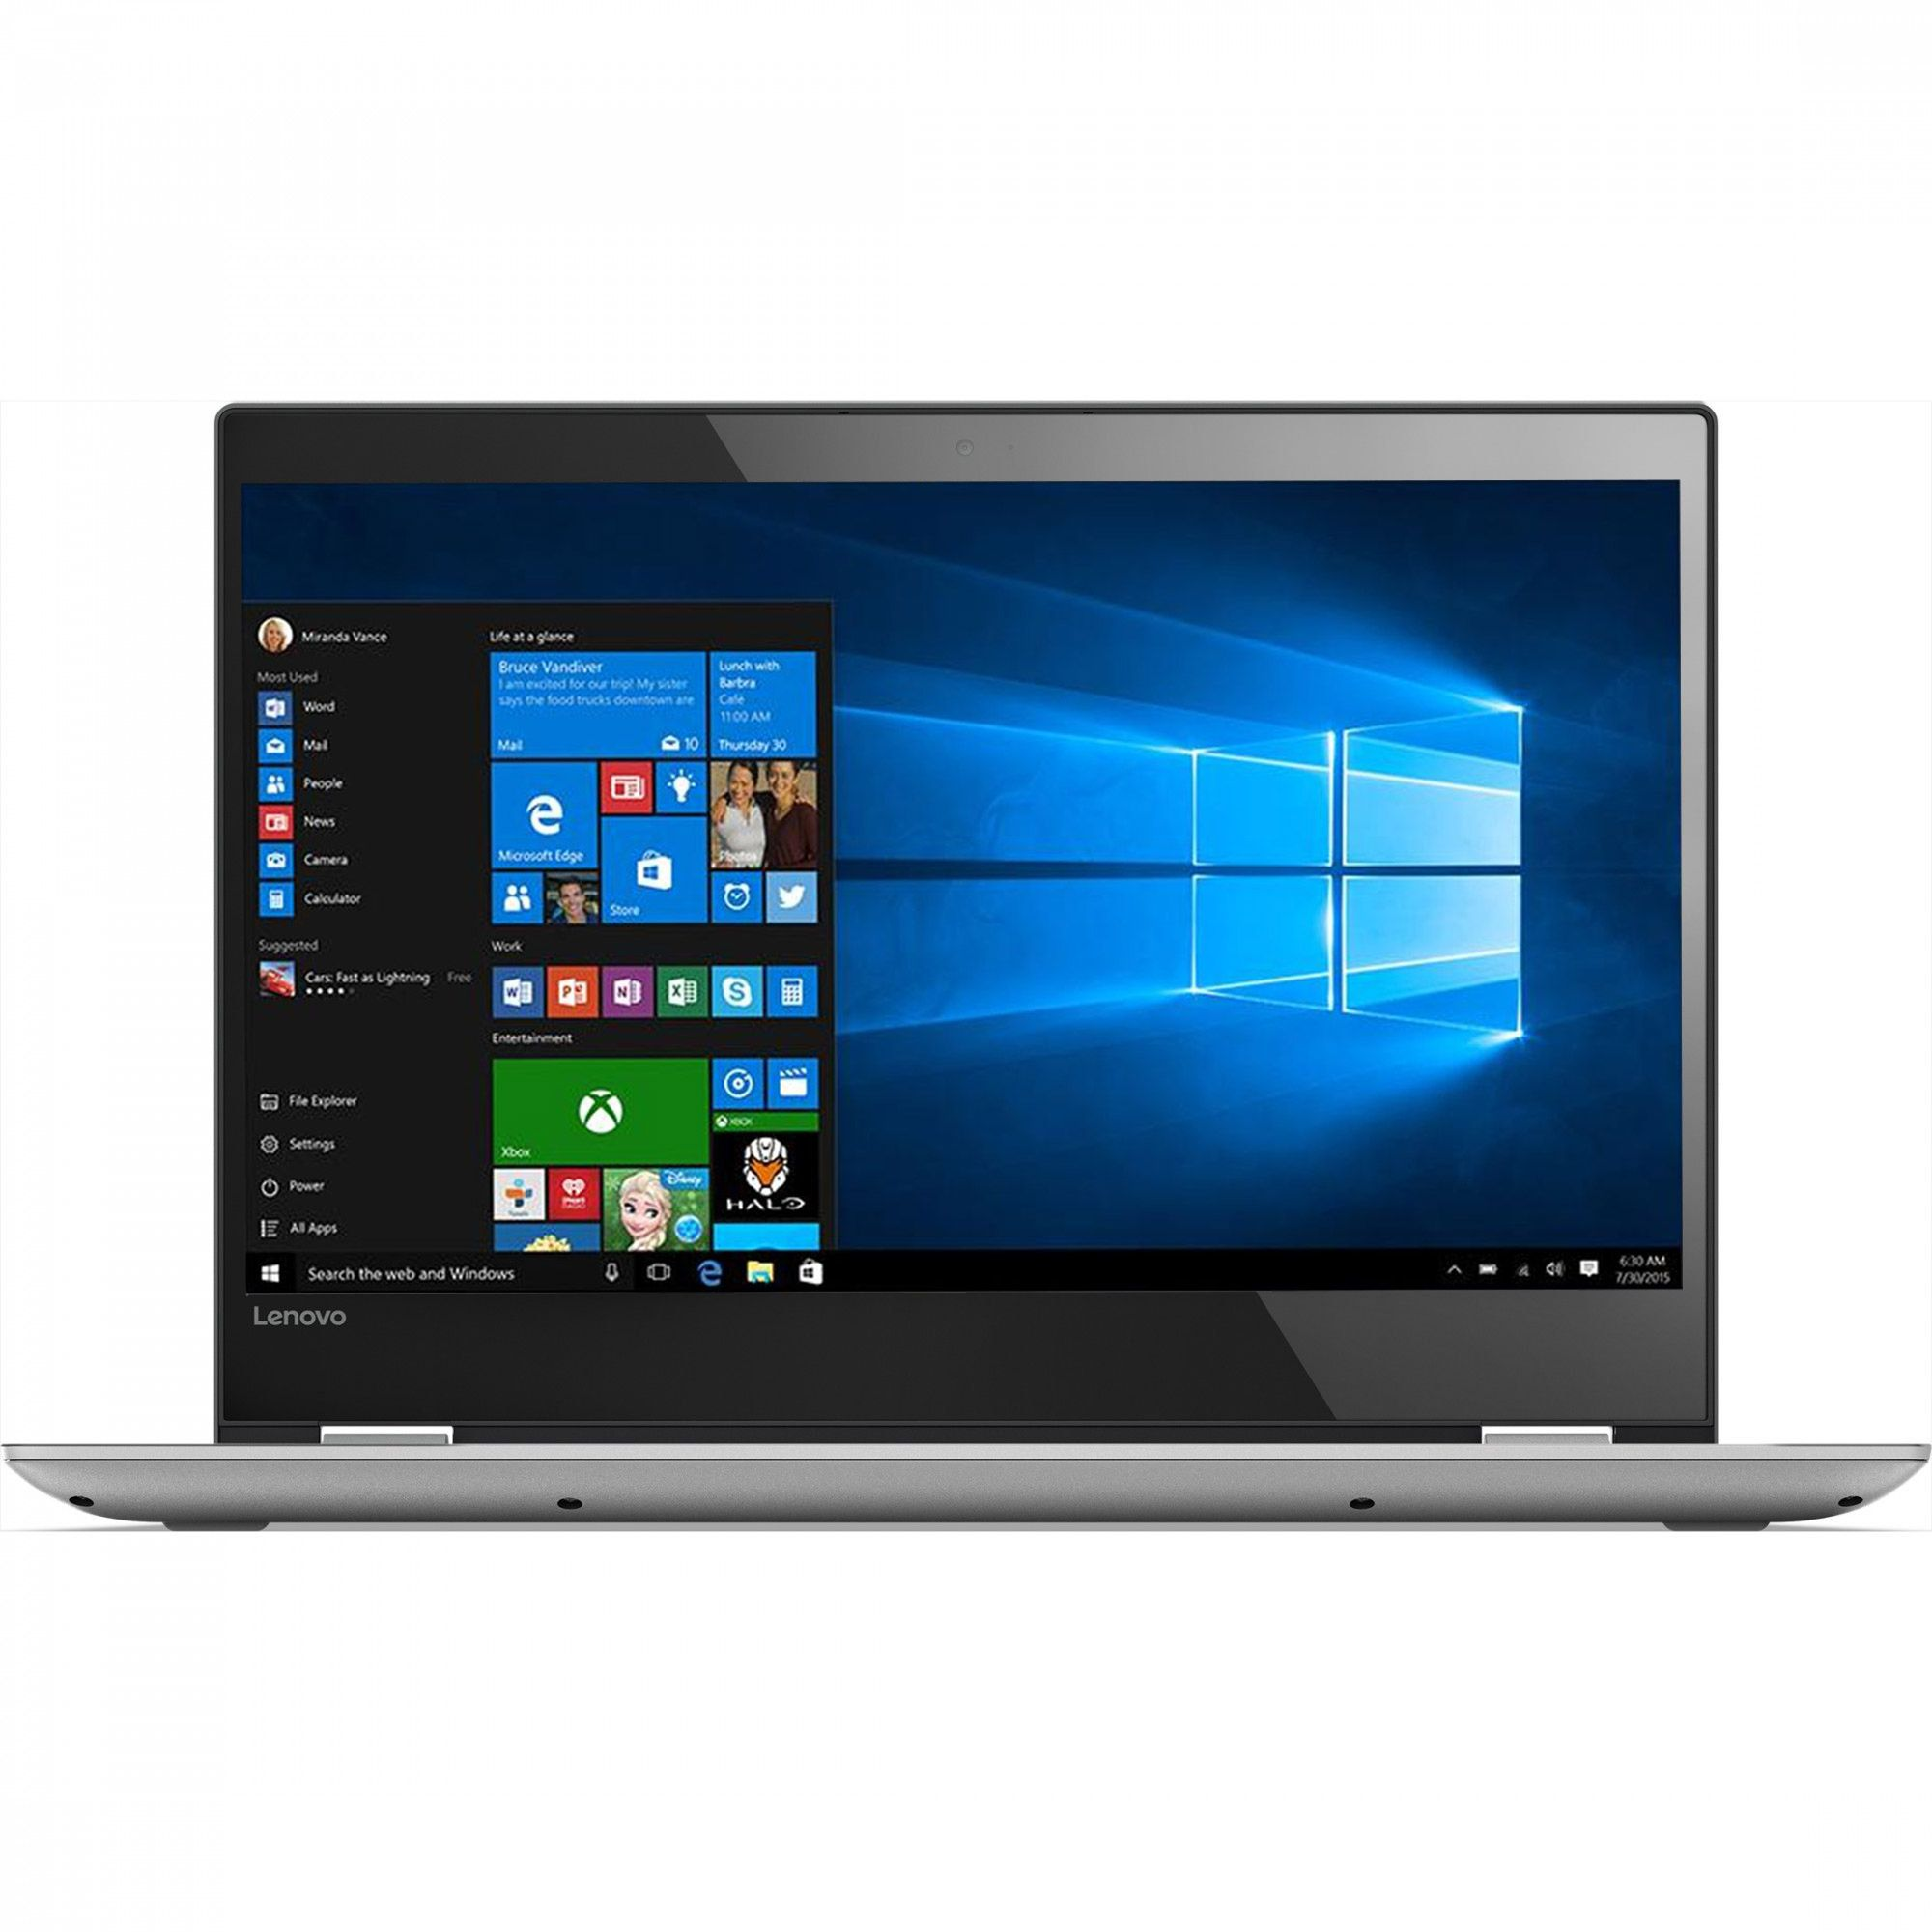 Ultrabook Lenovo Yoga 520 14 Full HD Touch Intel Core i3-7130U RAM 8GB HDD 1TB + SSD 128GB Windows 10 Home Gri